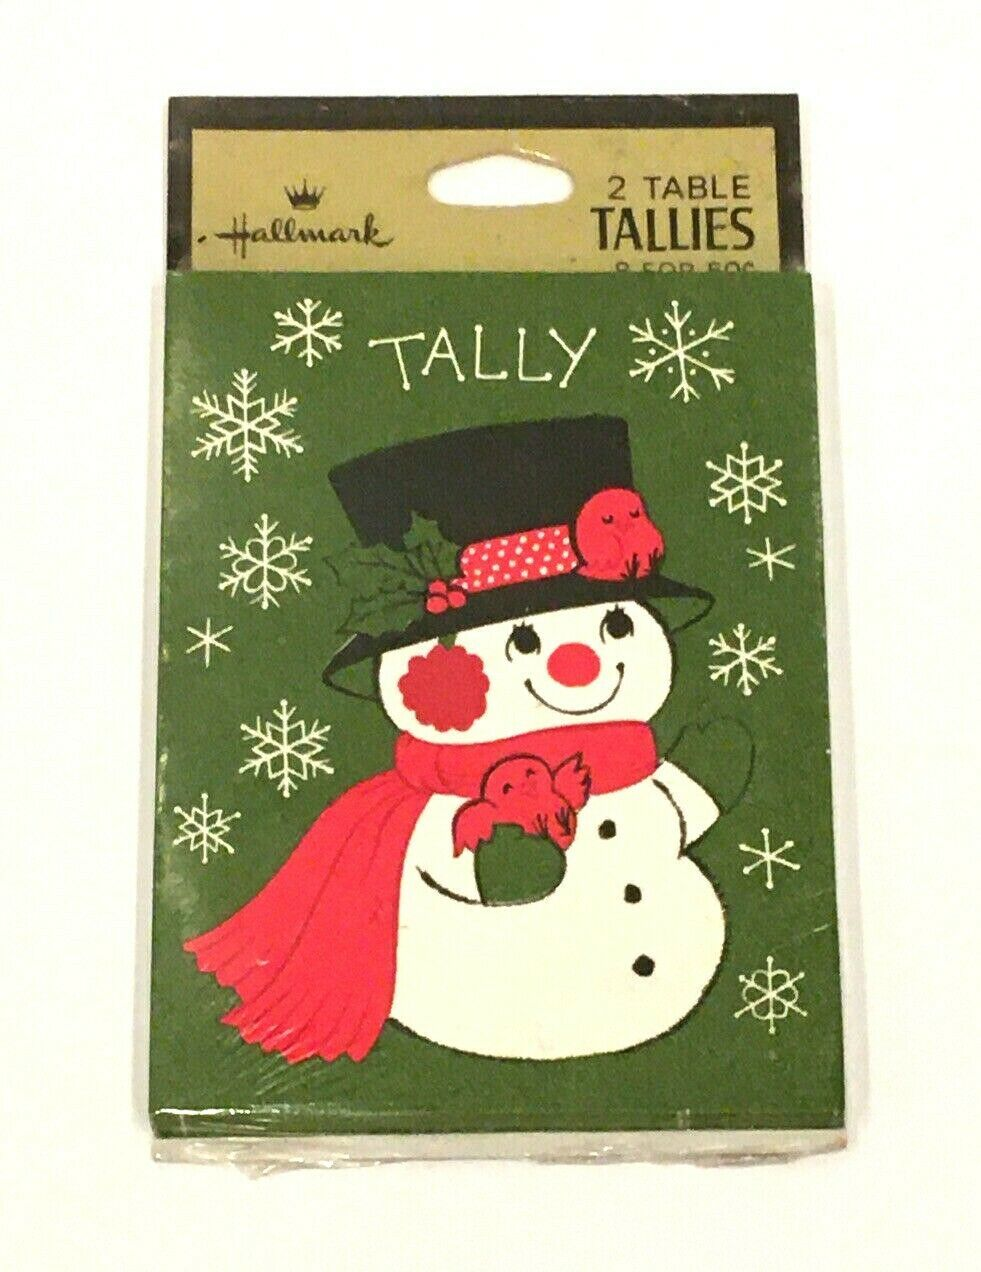 Primary image for Vintage Hallmark 2 Table Tallies Sealed Snowman Holiday Christmas Bridge Cards